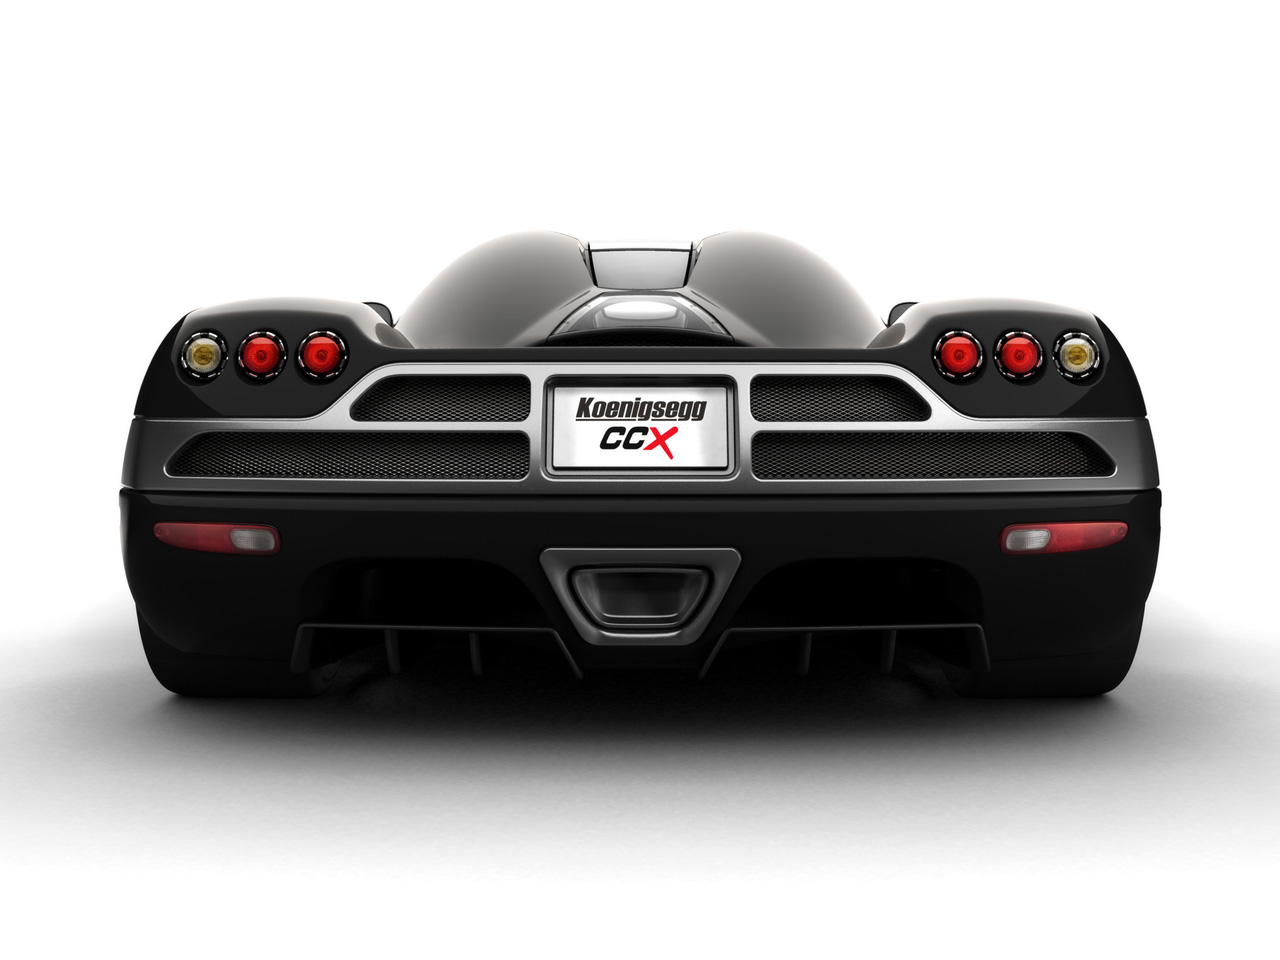 Koenigsegg CCX Wallpapers Bikes Cars Wallpapers 1280x960